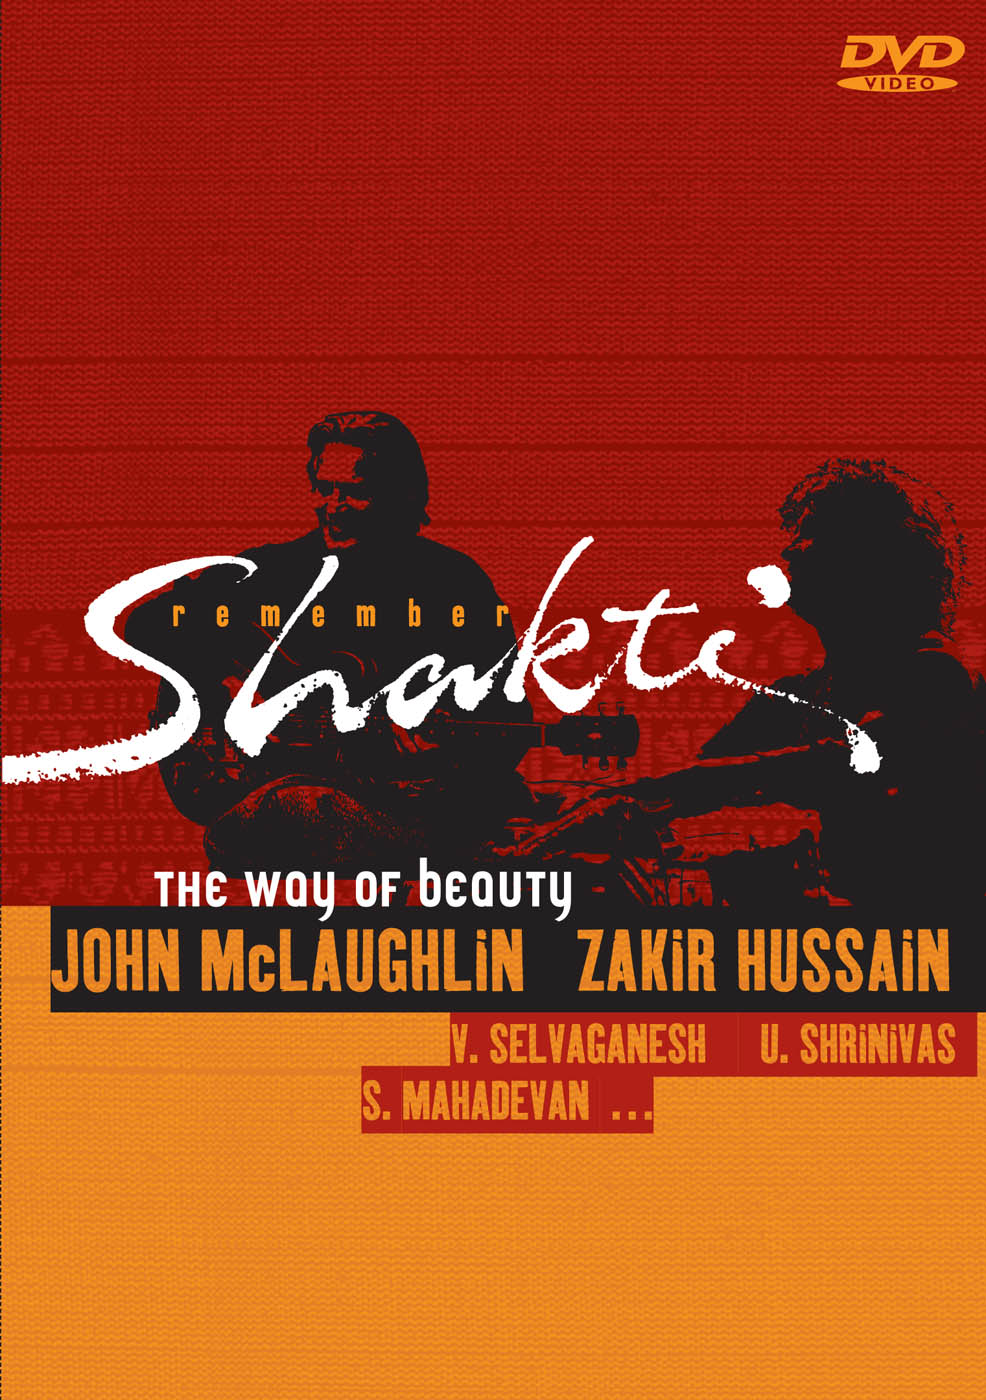 Remember Shakti - the way of beauty  by John McLaughlin